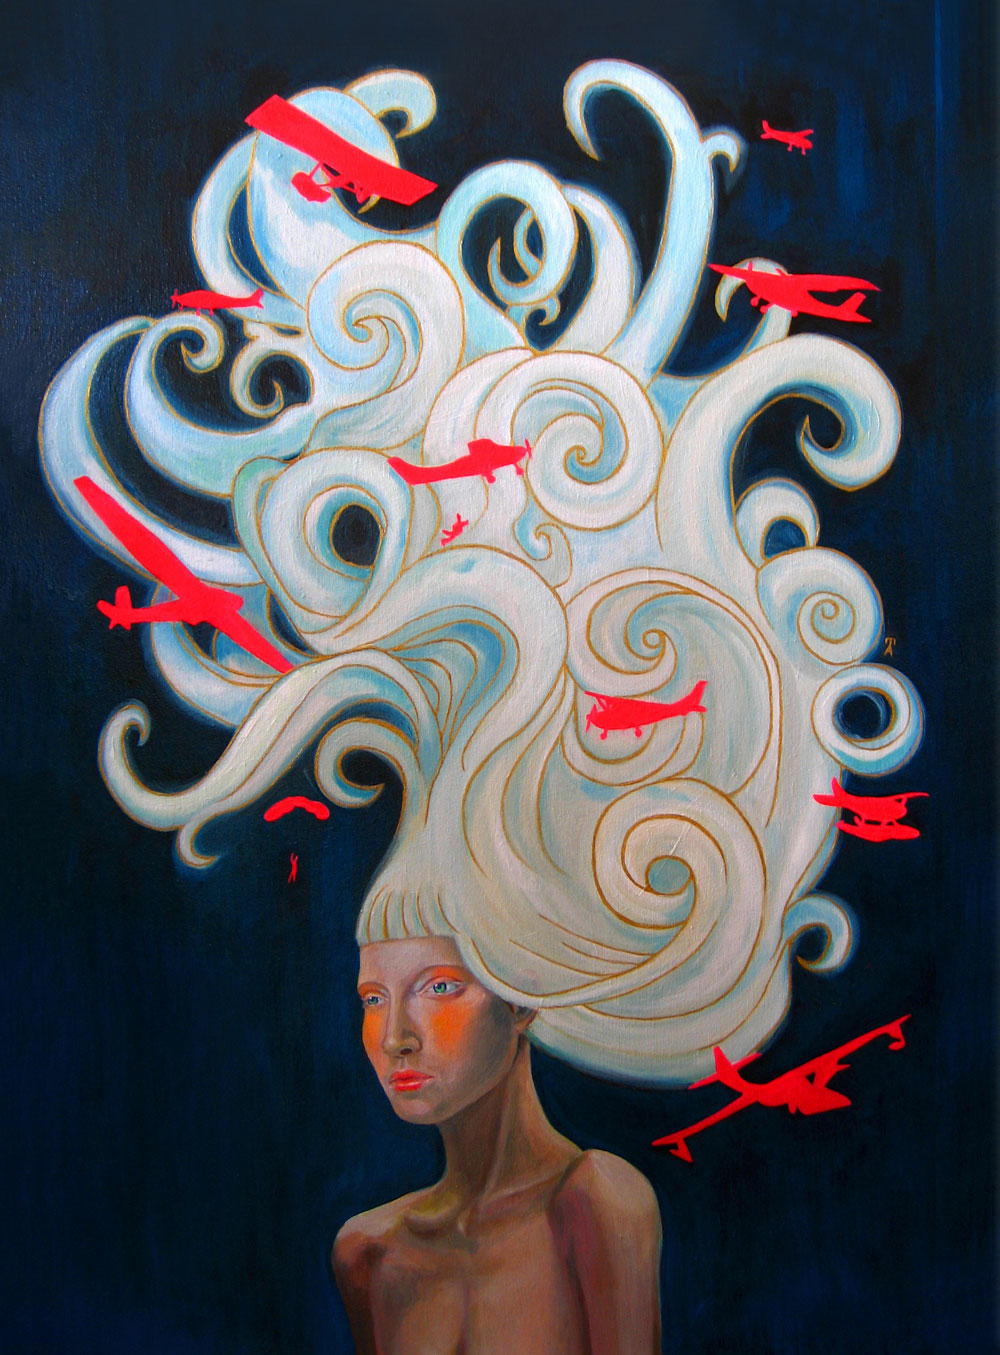 Cloud full of Hair, 2008